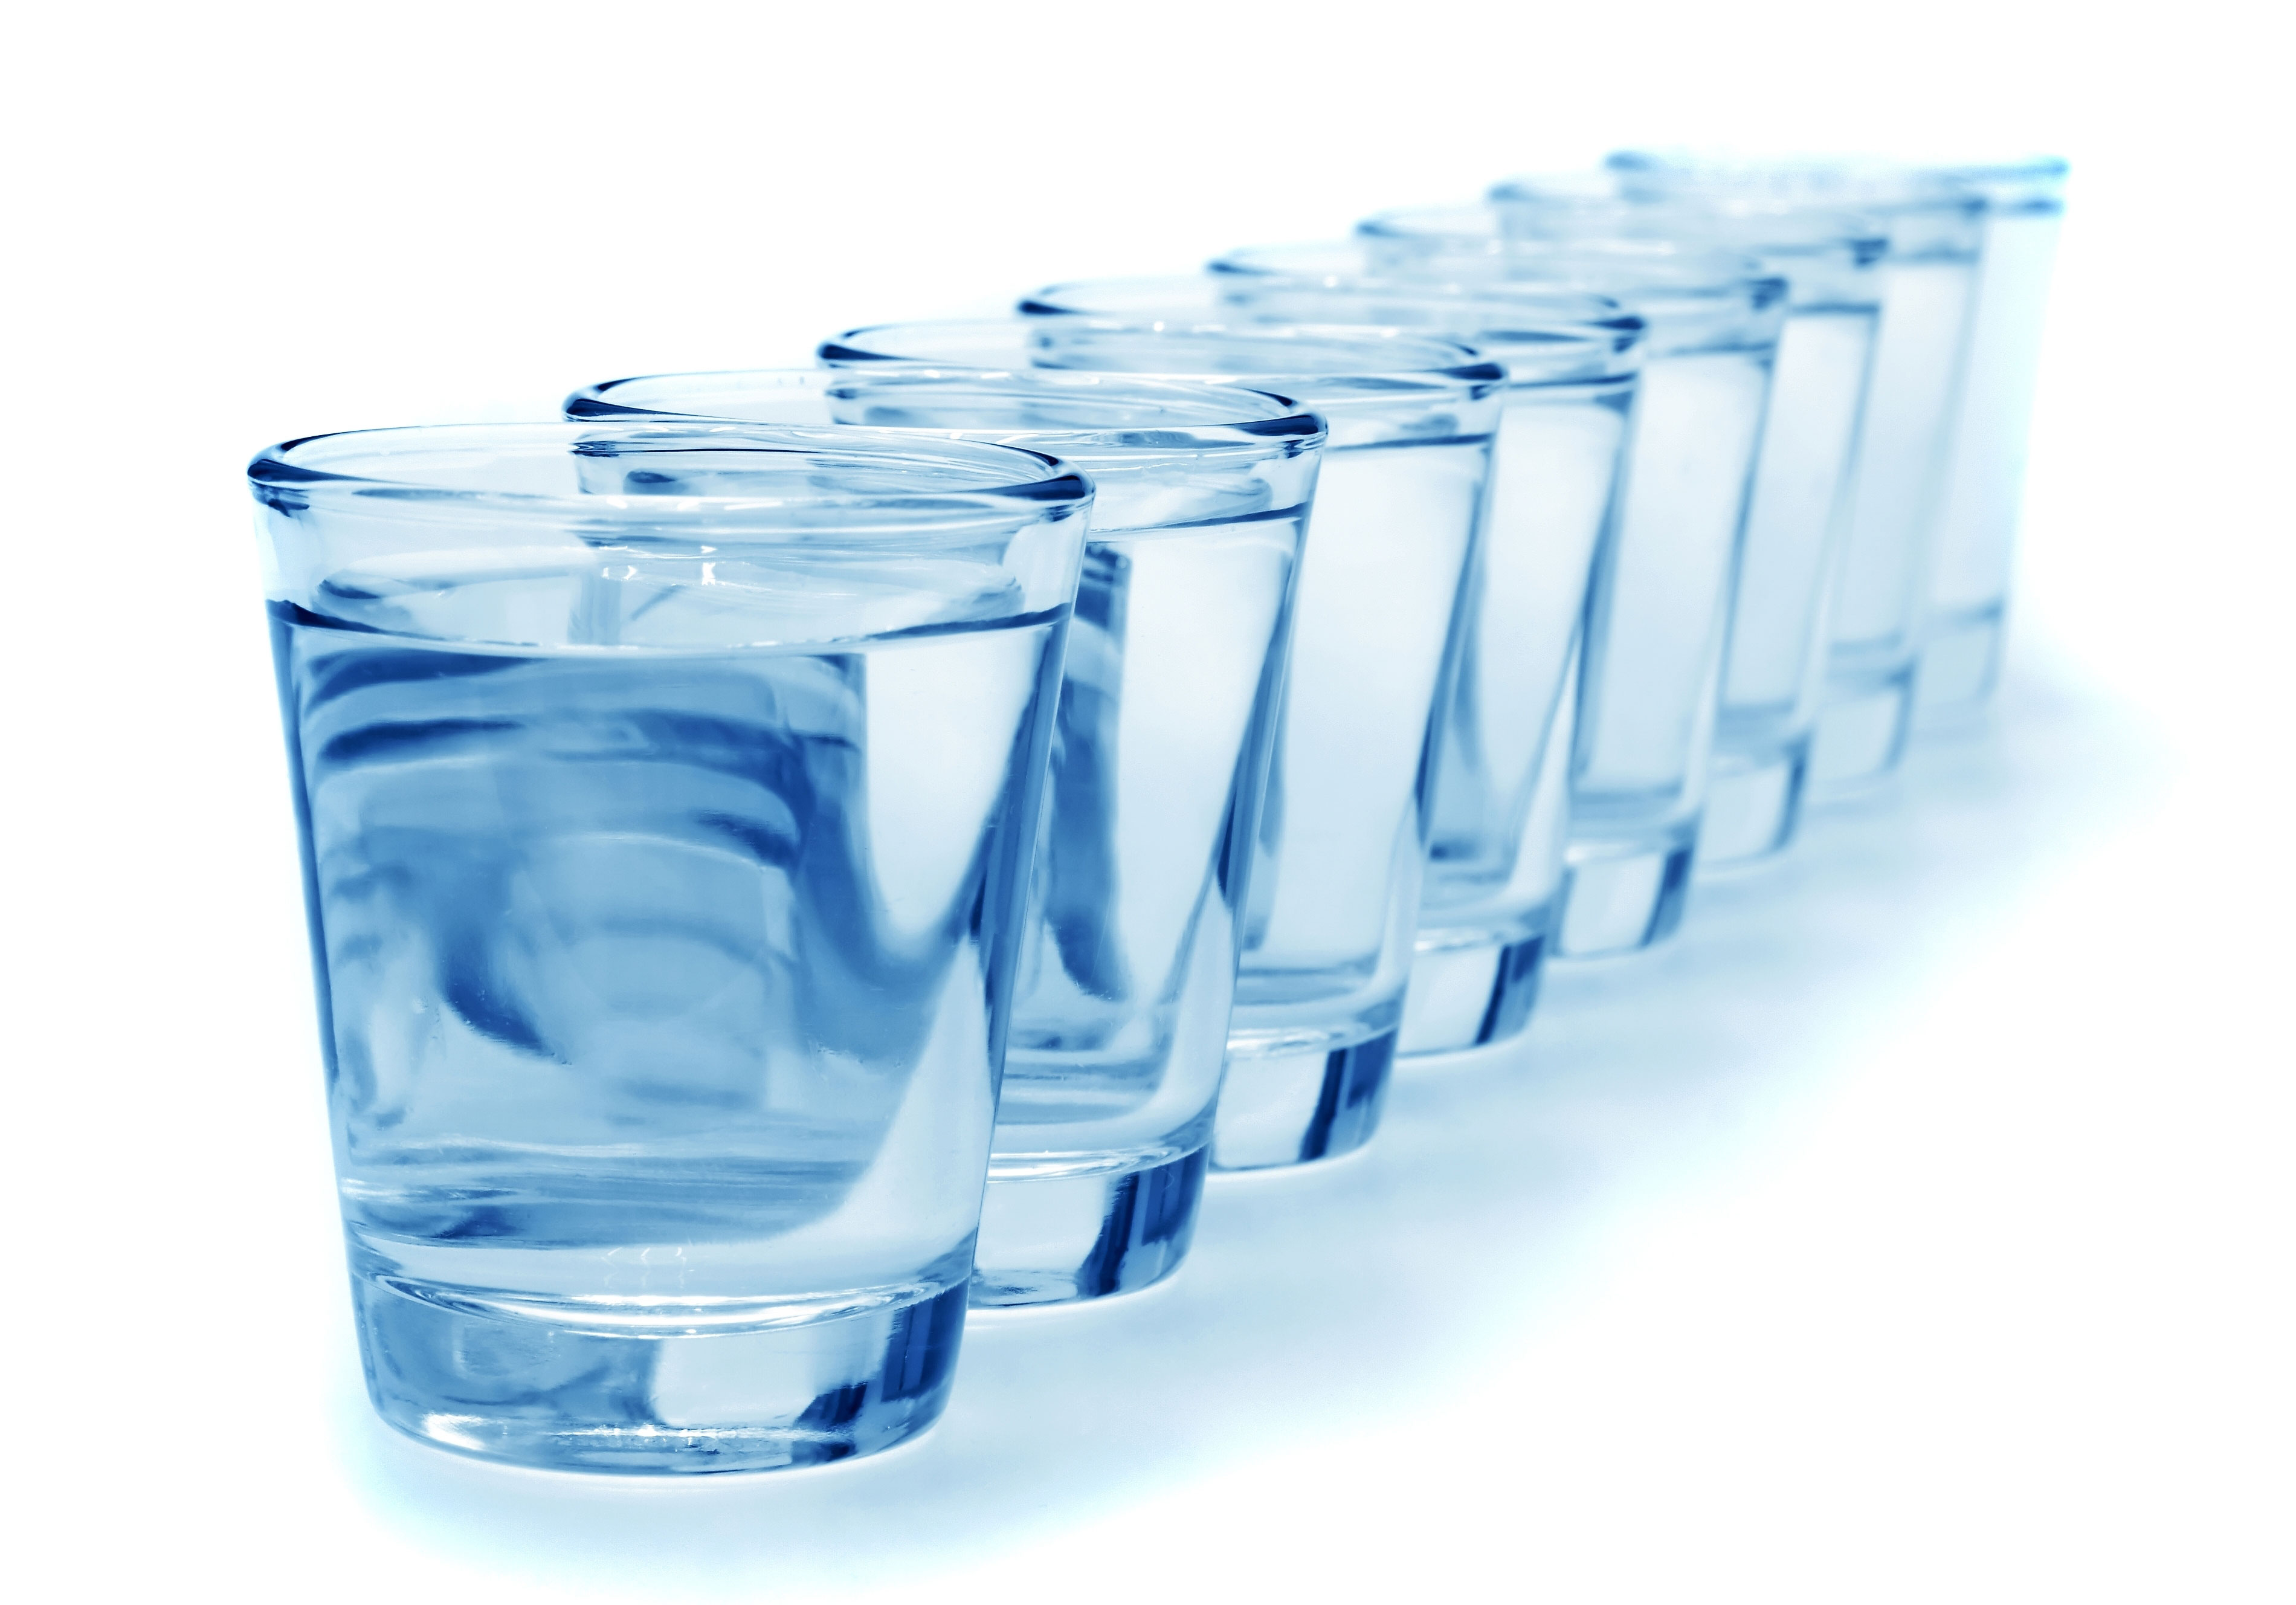 A glass of water will help prevent stroke and heart attack